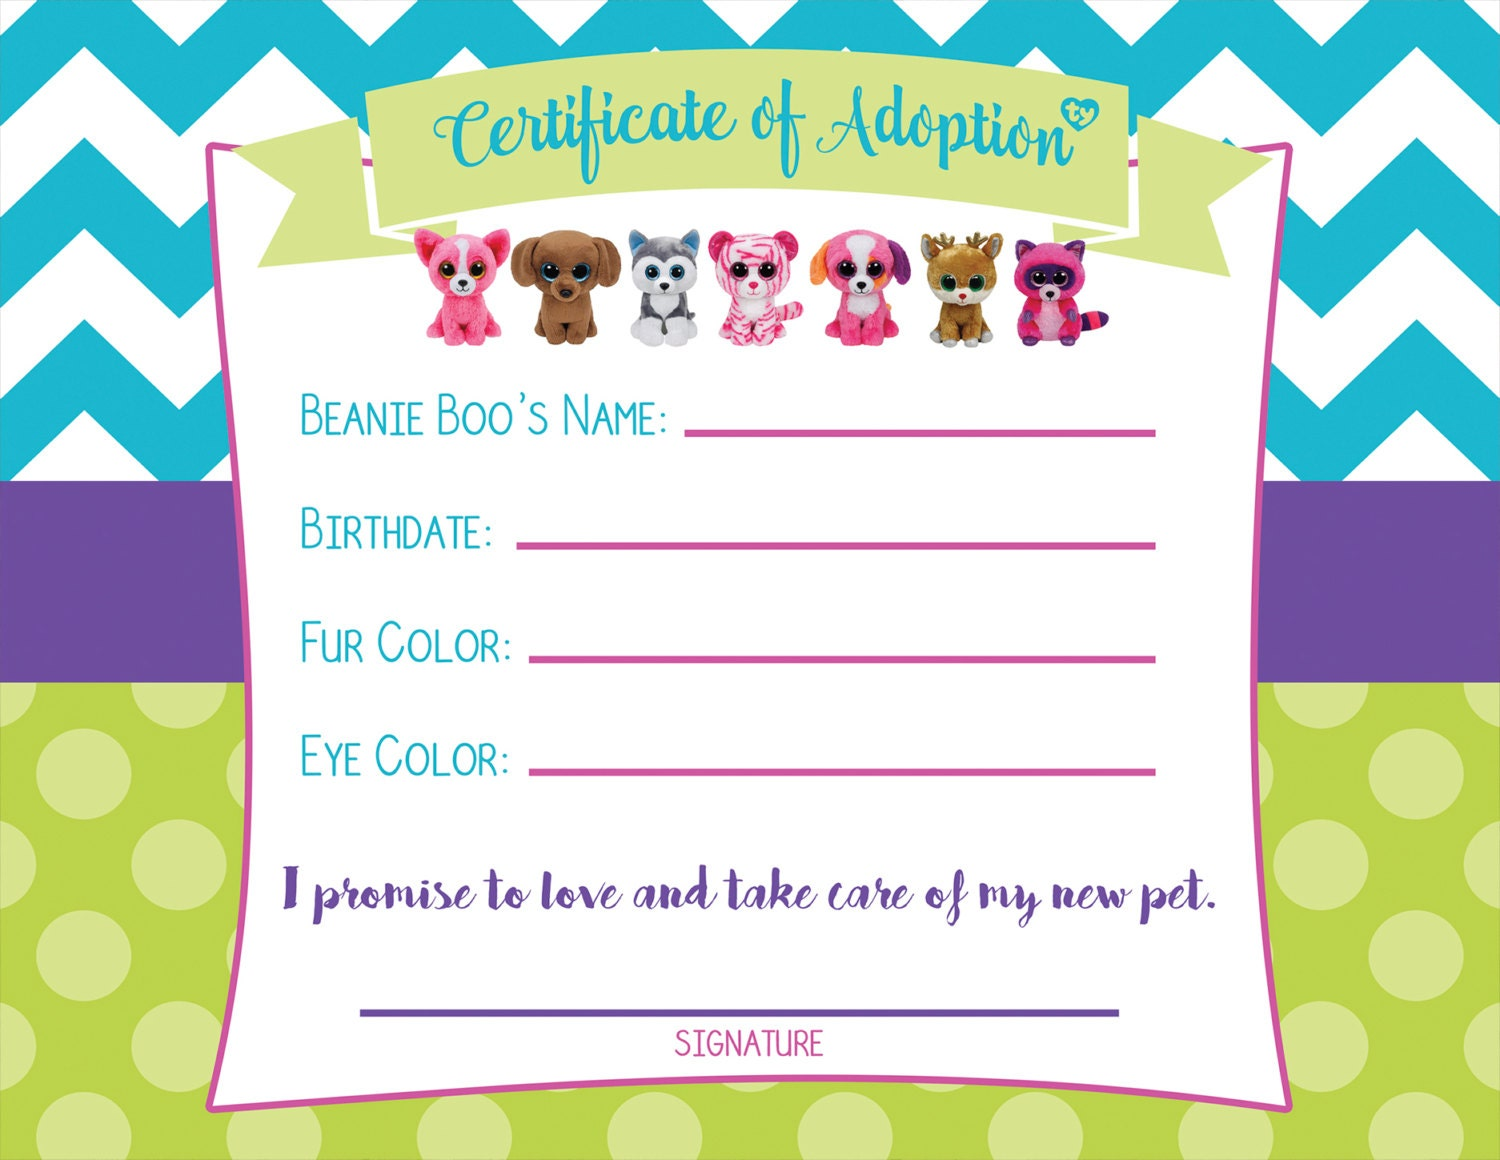 Certificate of Adoption Beanie Boo Birthday by MillennialMomLife